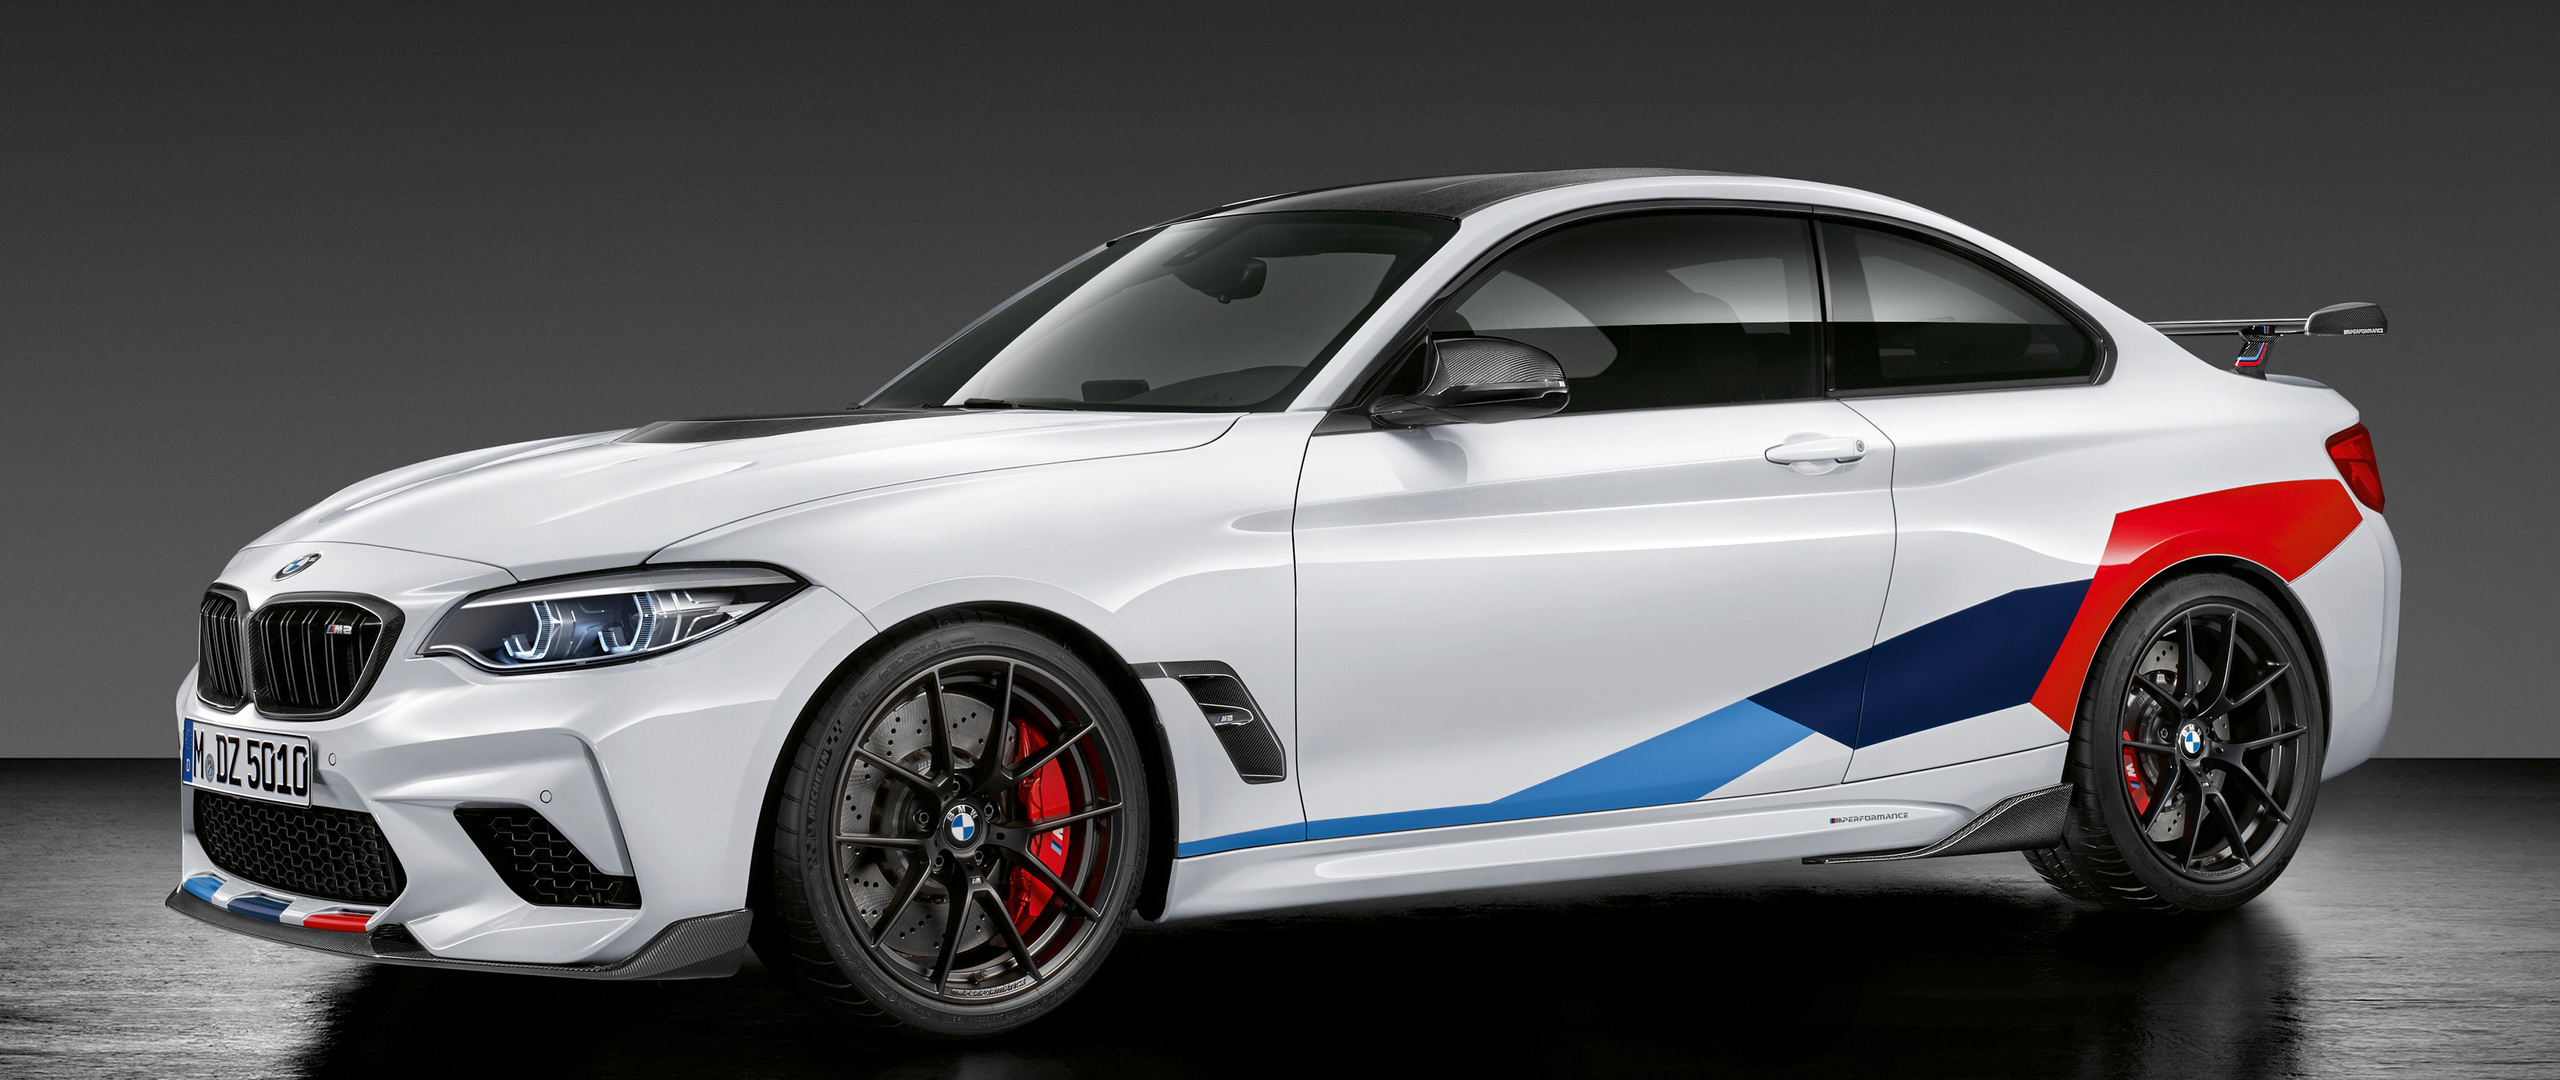 2560x1080 Bmw M2 Competition 4k 2560x1080 Resolution Hd 4k Wallpapers Images Backgrounds Photos And Pictures